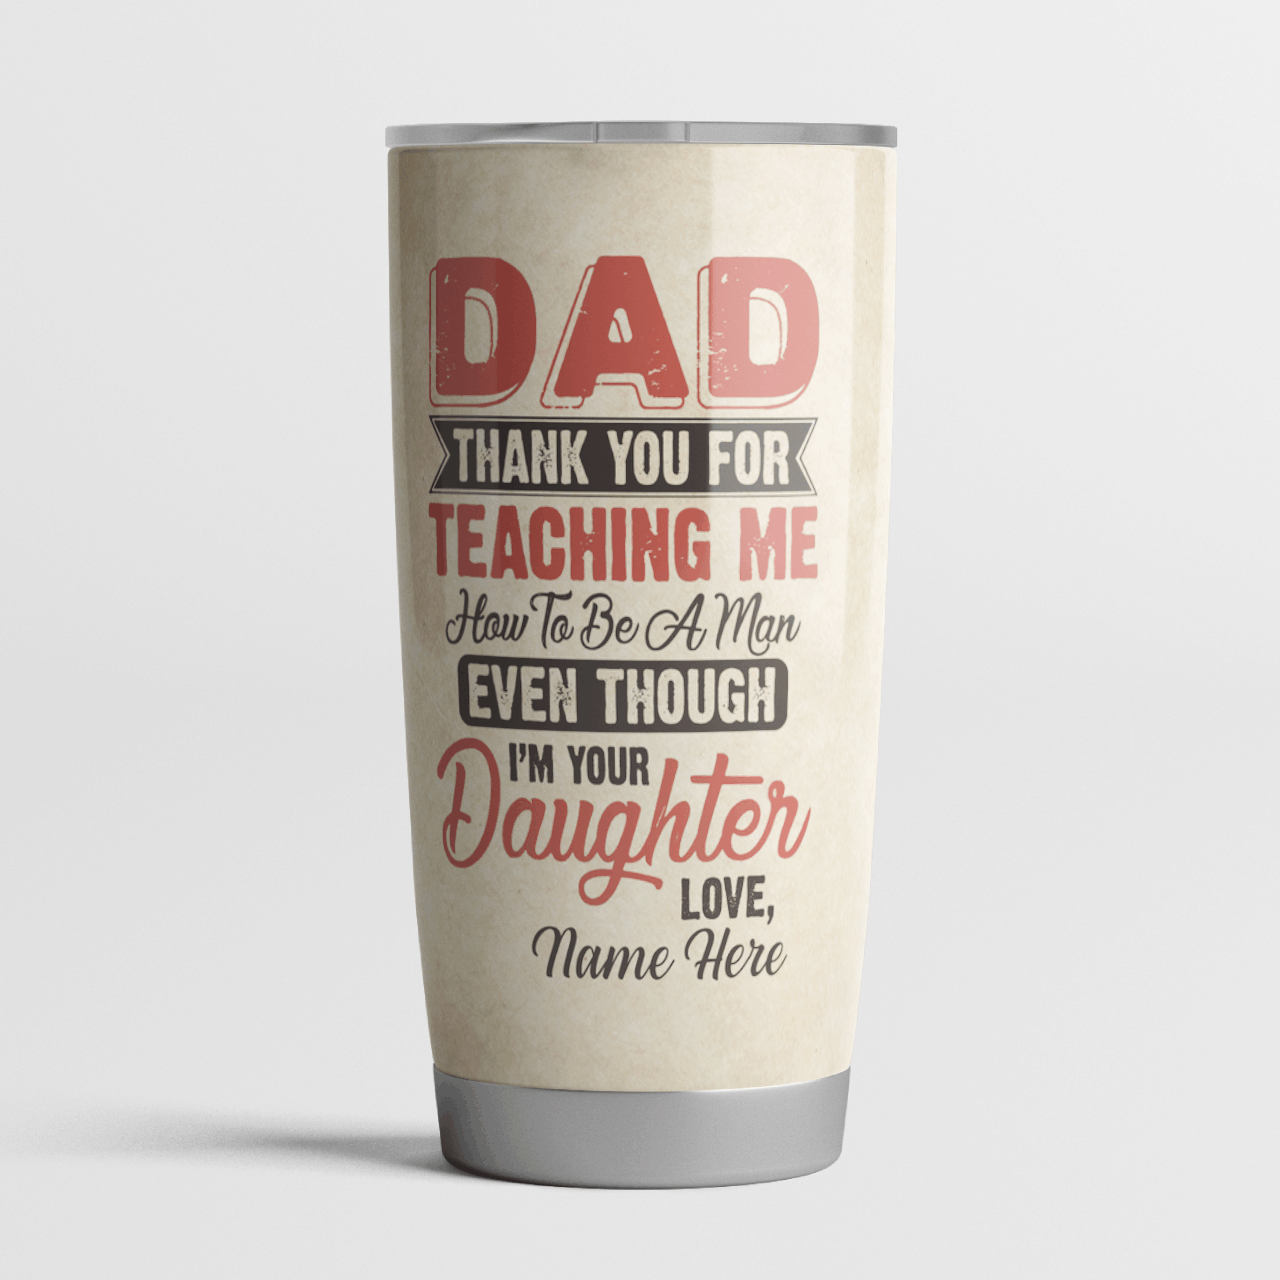 Dad Thanks you for teaching me -Fishing